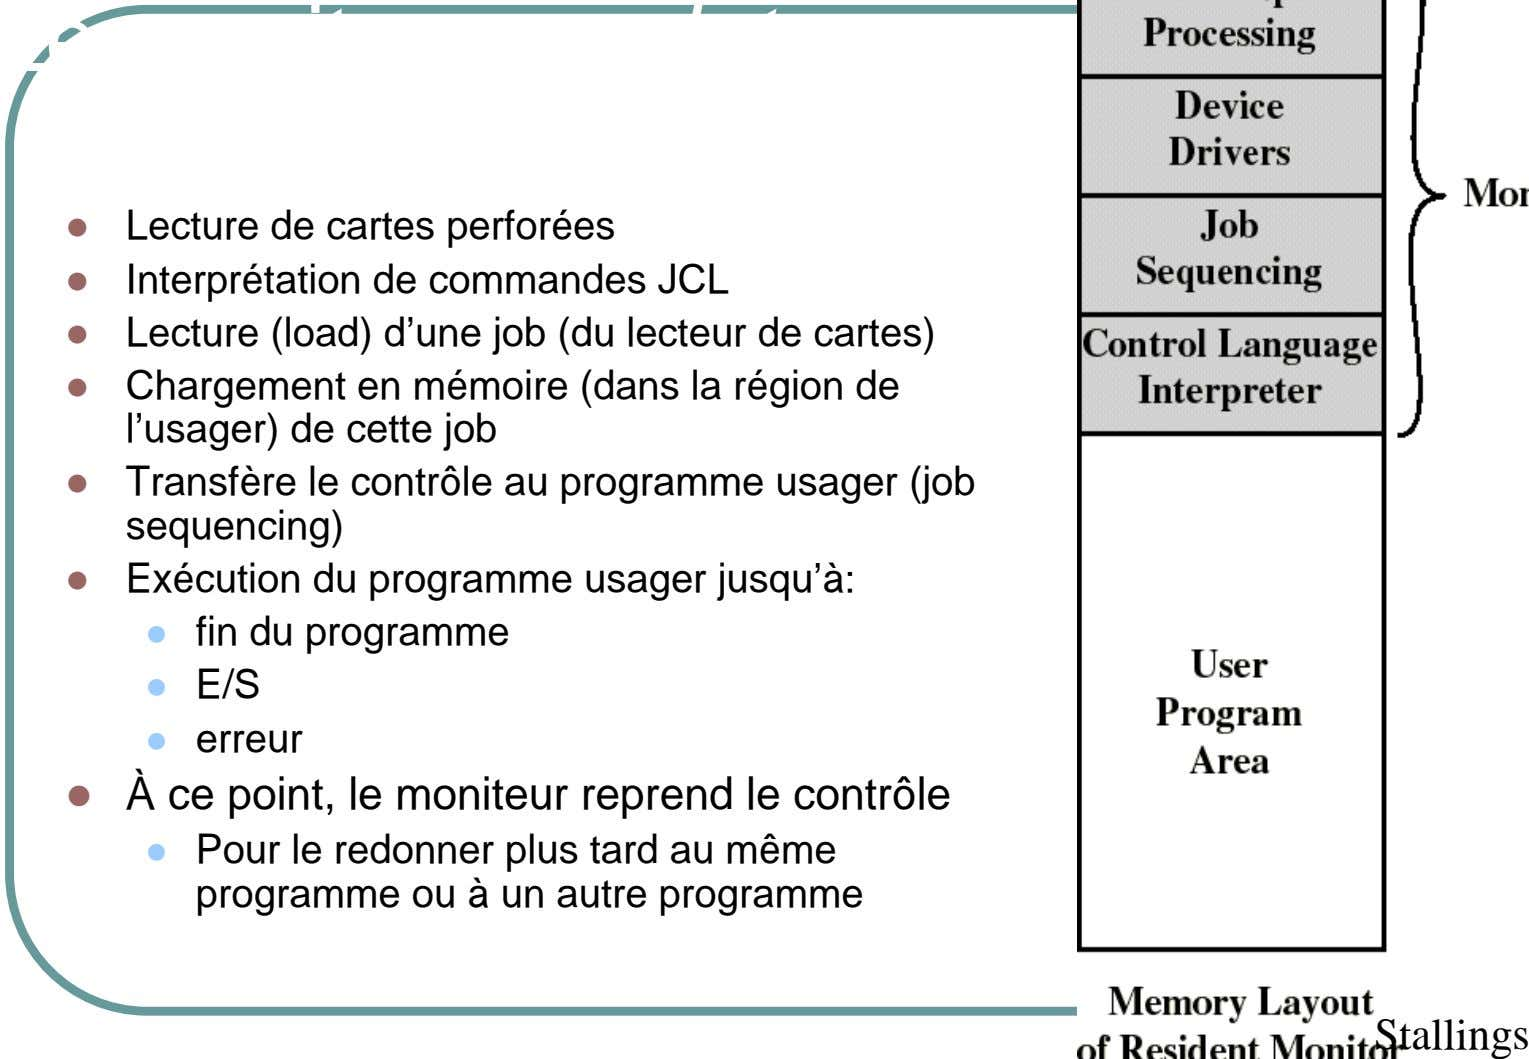 Le moniteur par lots Lecture de cartes perforées Interprétation de commandes JCL Lecture (load) d'une job